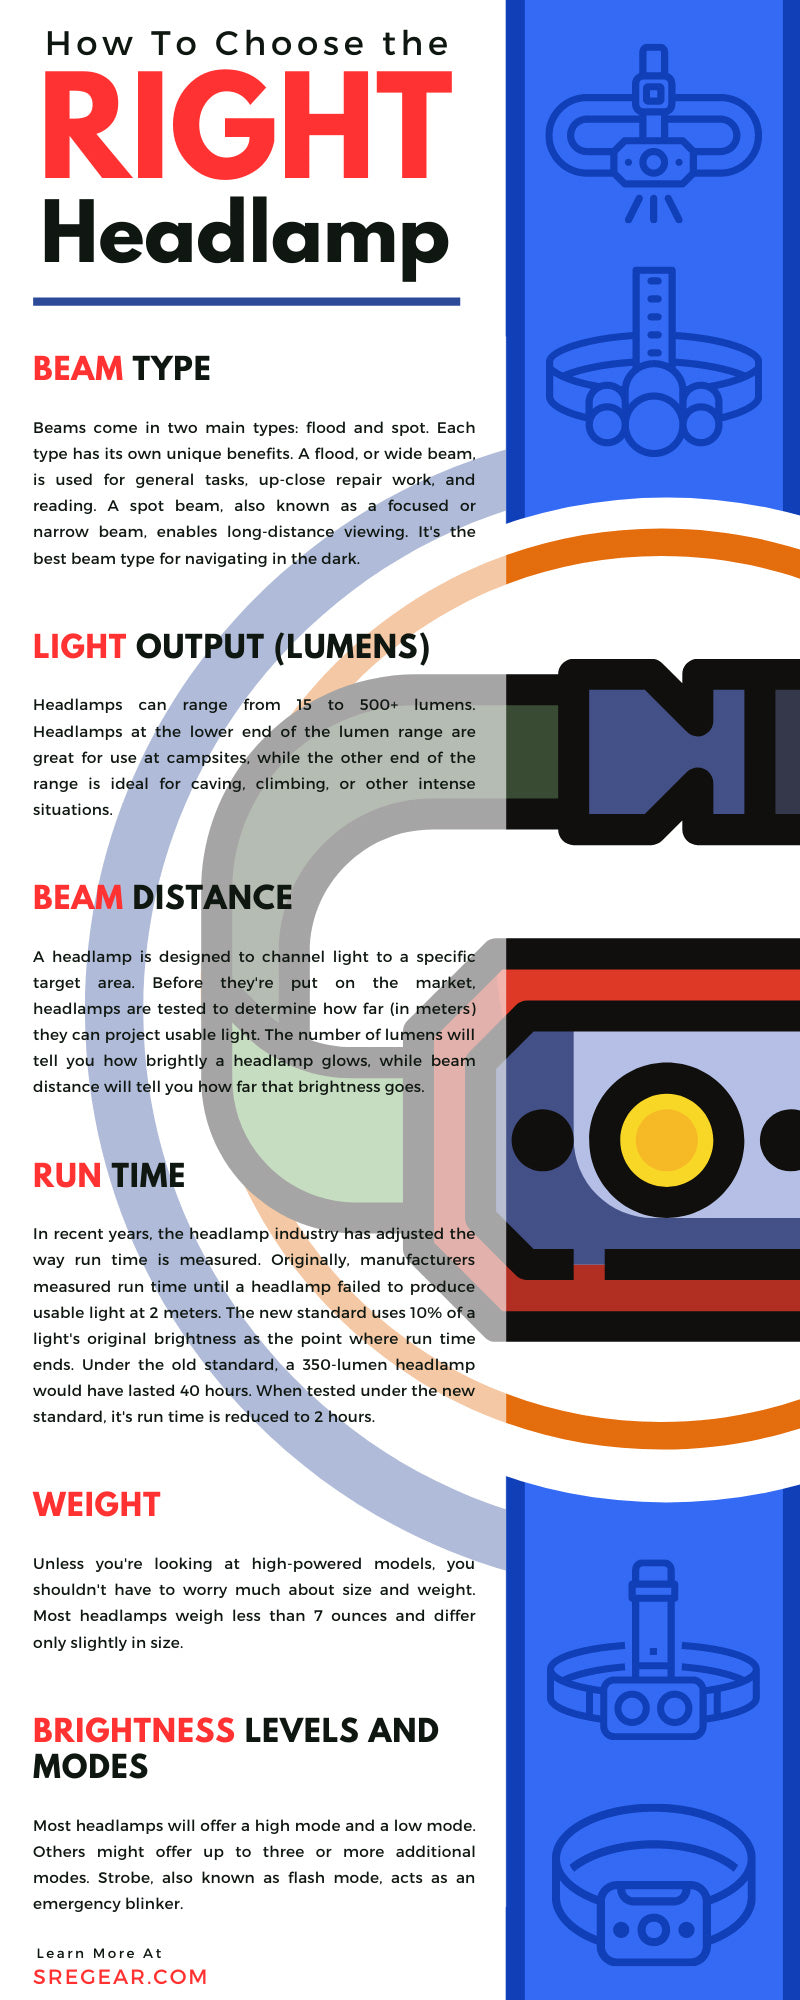 How To Choose the Right Headlamp